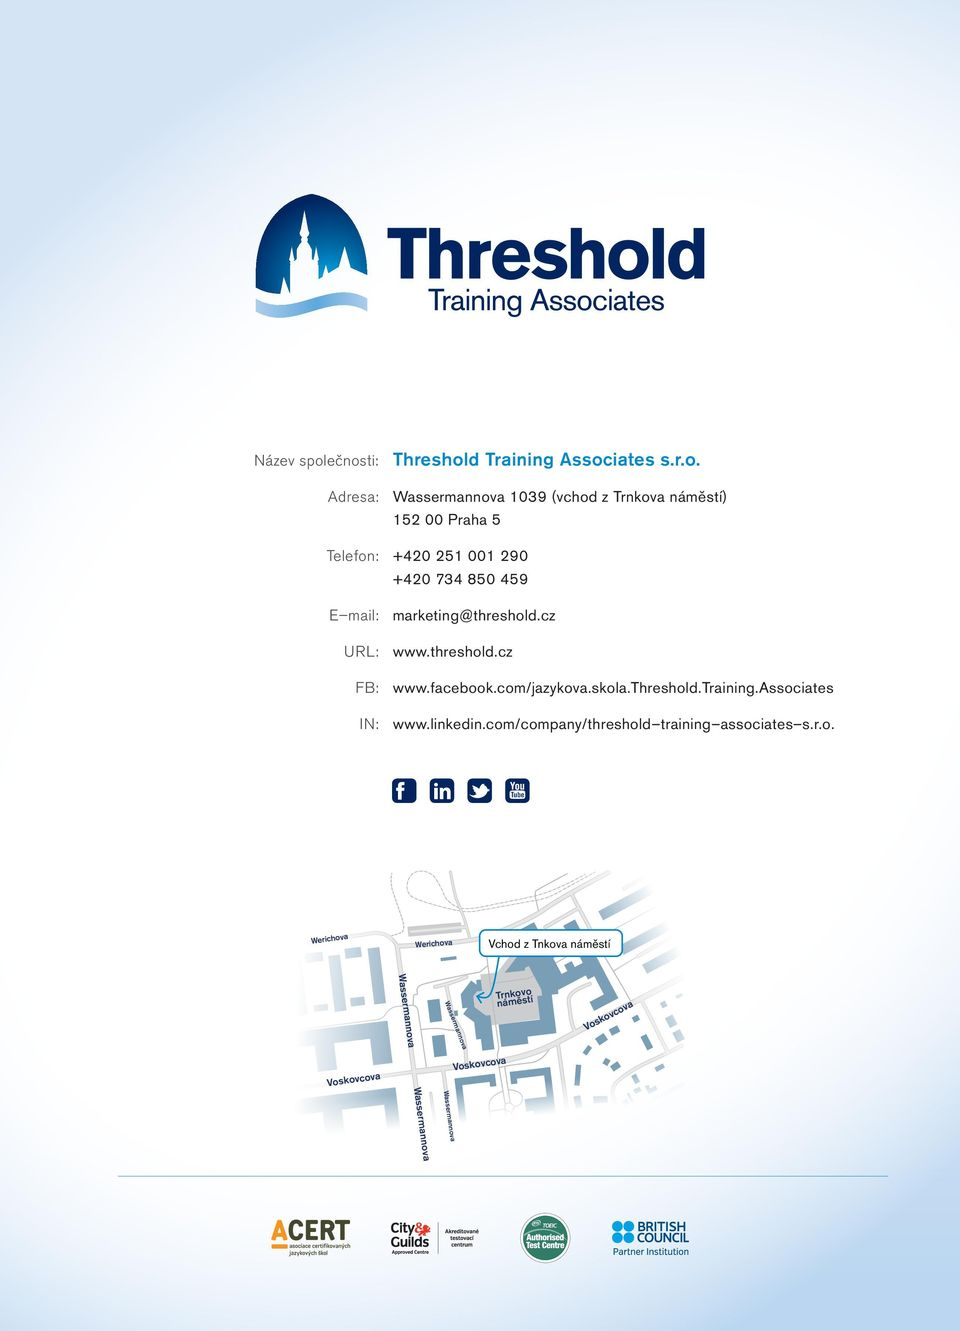 +420 251 001 290 +420 734 850 459 E mail: marketing@threshold.cz URL: www.threshold.cz FB: www.facebook.com/jazykova.skola.